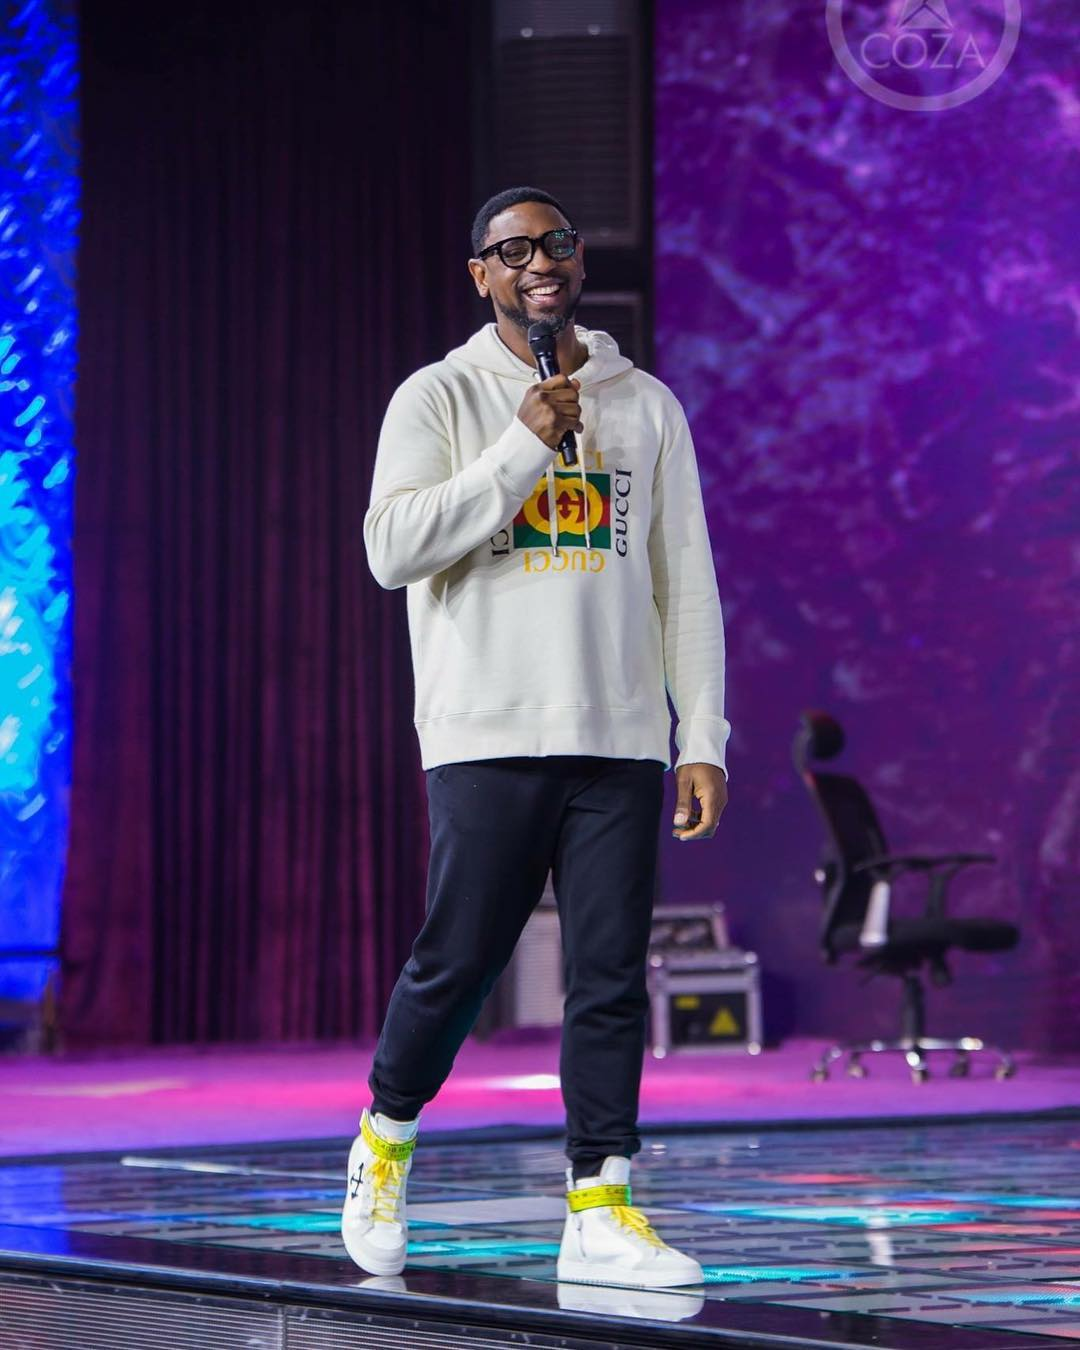 Photo:Check Out COZA pastor's $1280 Gucci hoodie